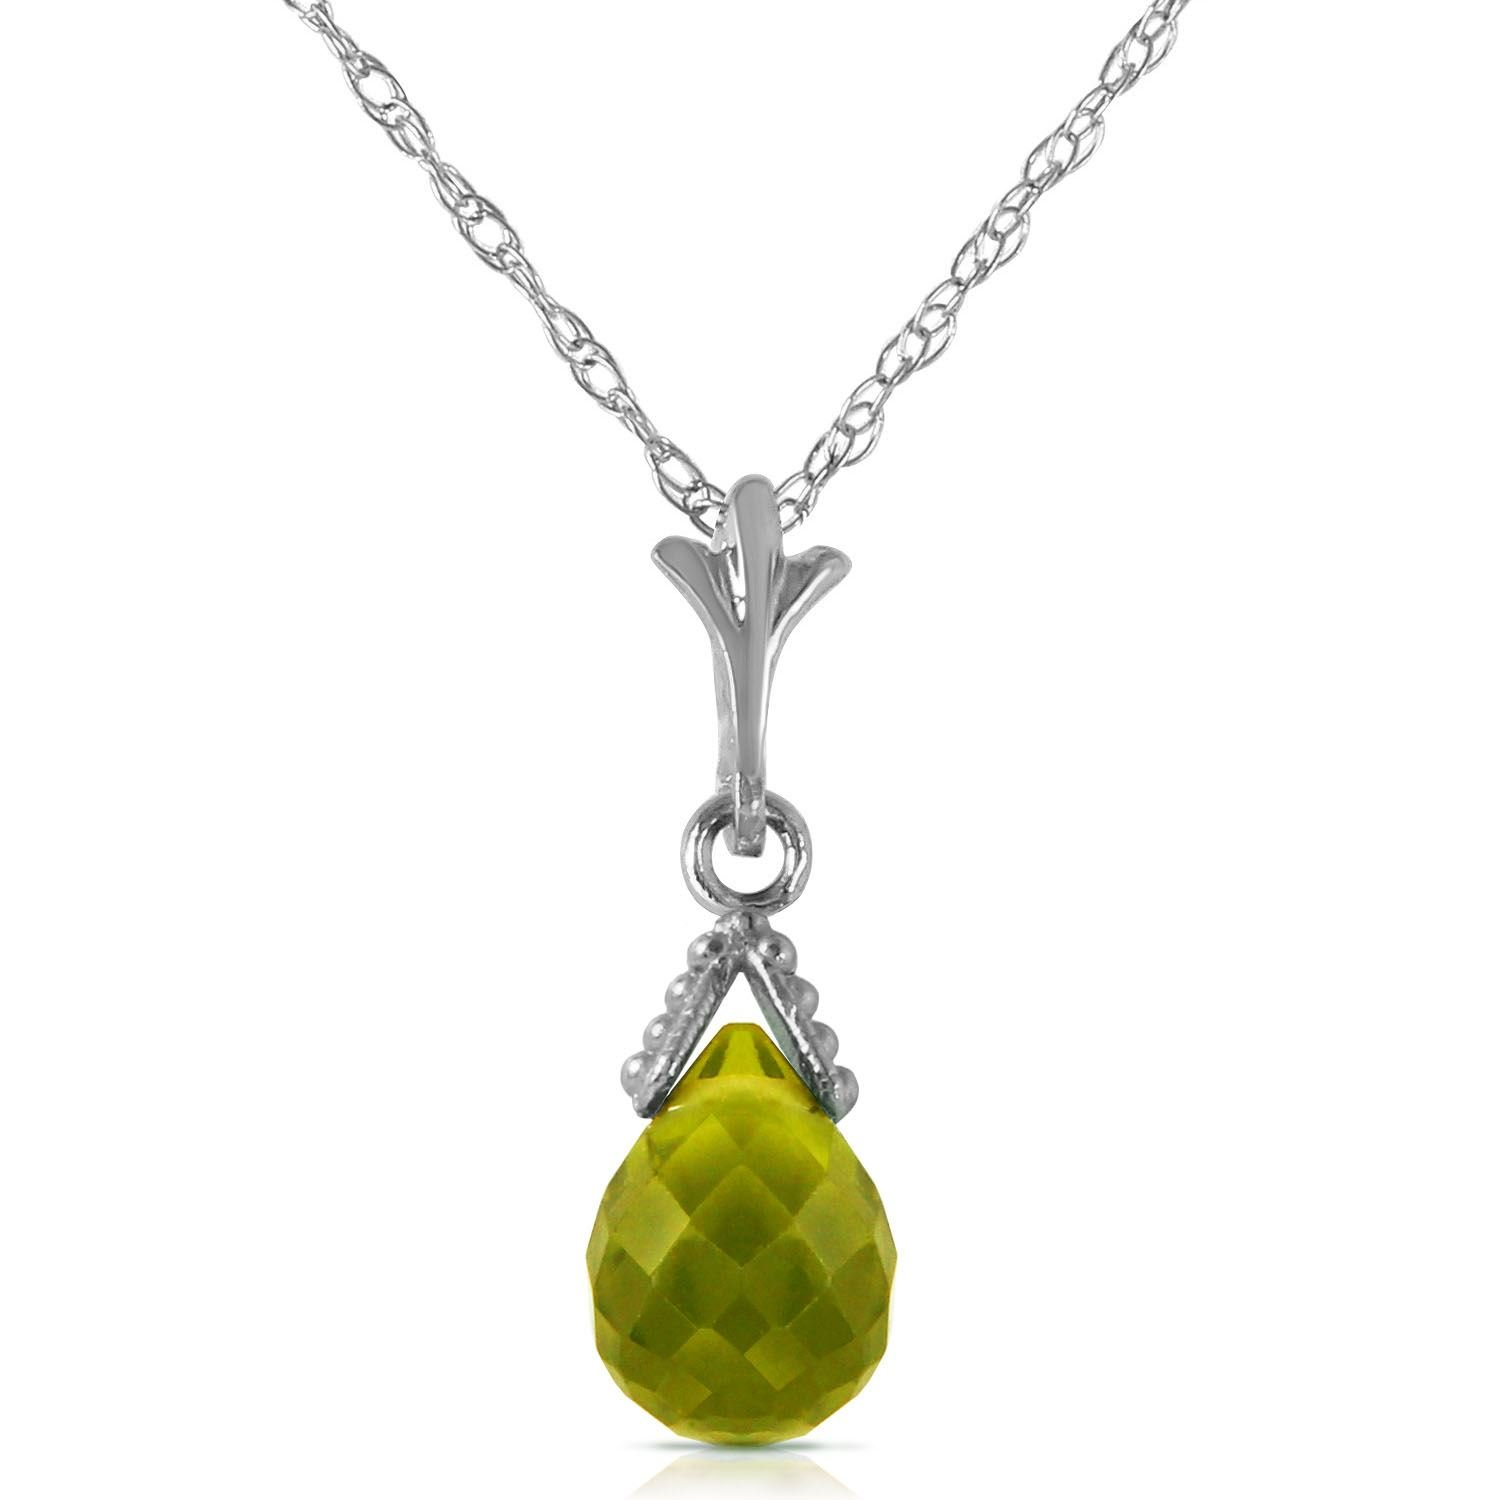 ALARRI 2.1 Carat 14K Solid White Gold Midst Of Memory Peridot Necklace with 18 Inch Chain Length